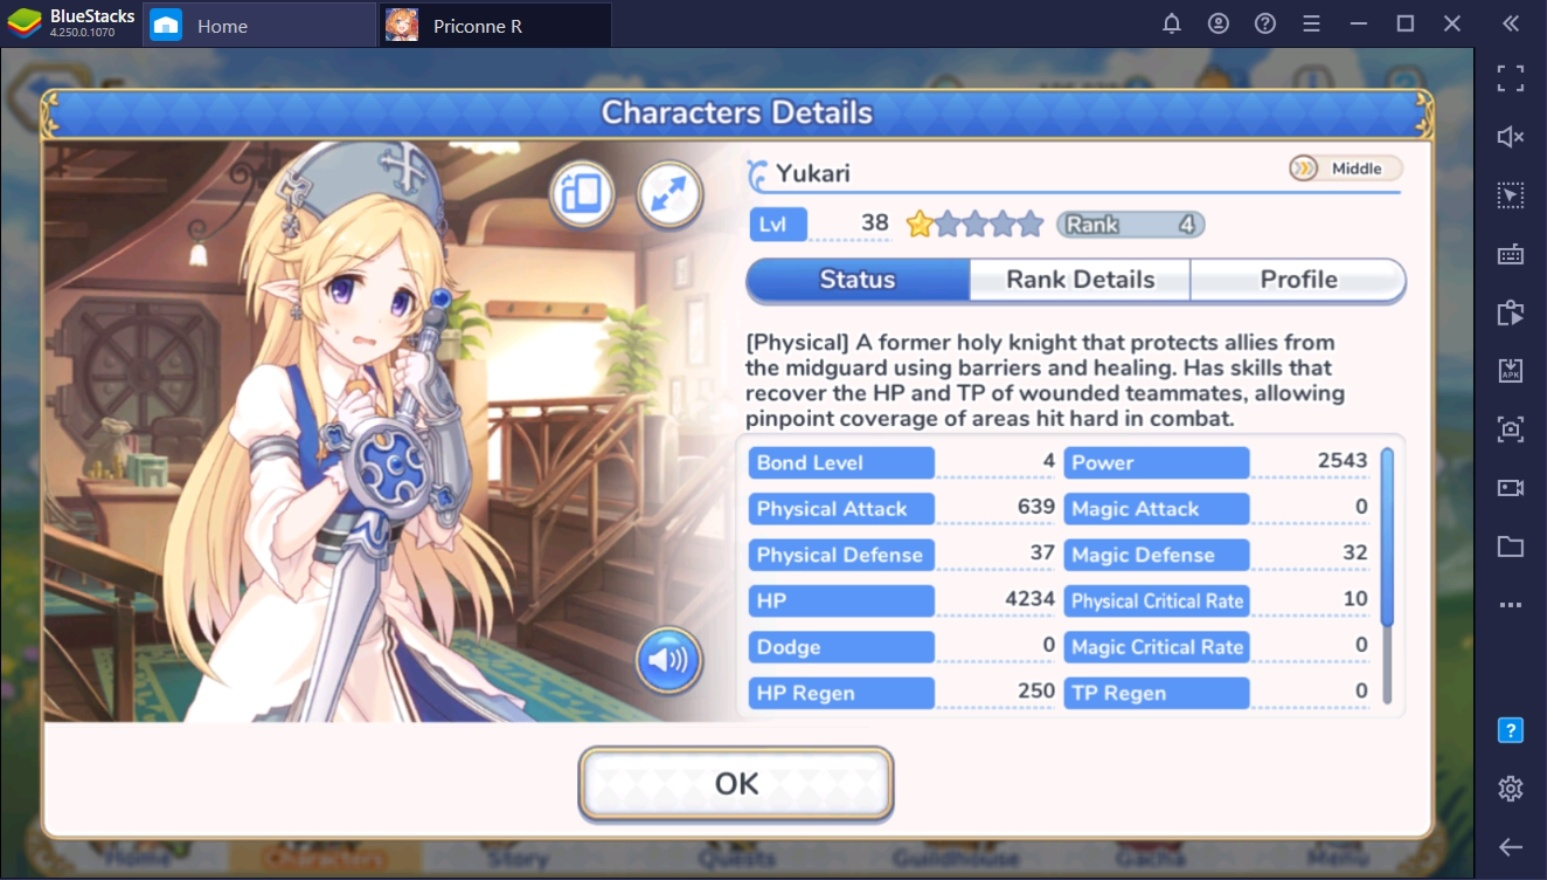 Top 5 Characters on Princess Connect! Re:Dive Global